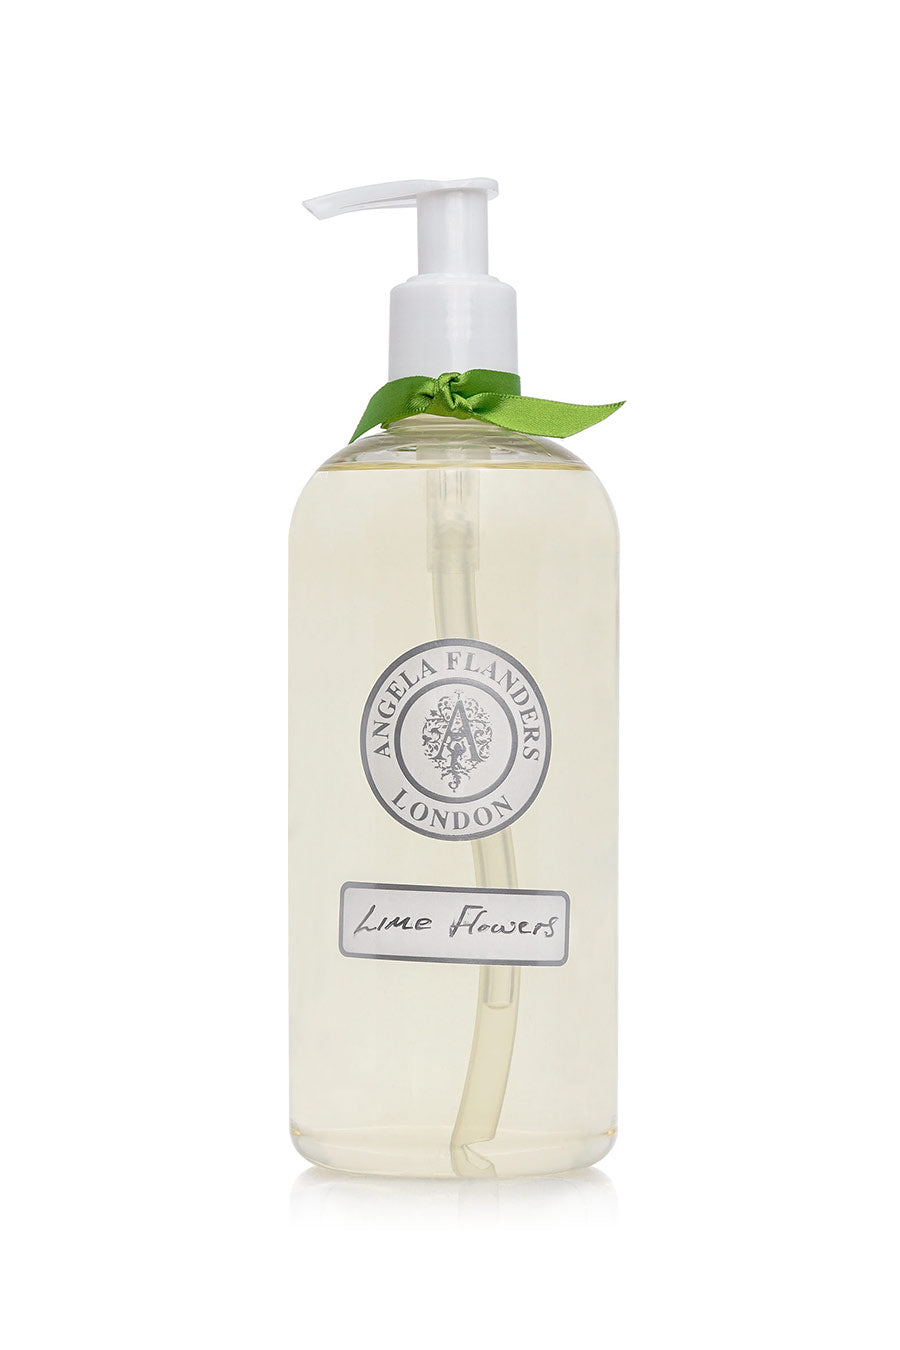 Angela Flanders Lime Flowers Hand & Body Wash